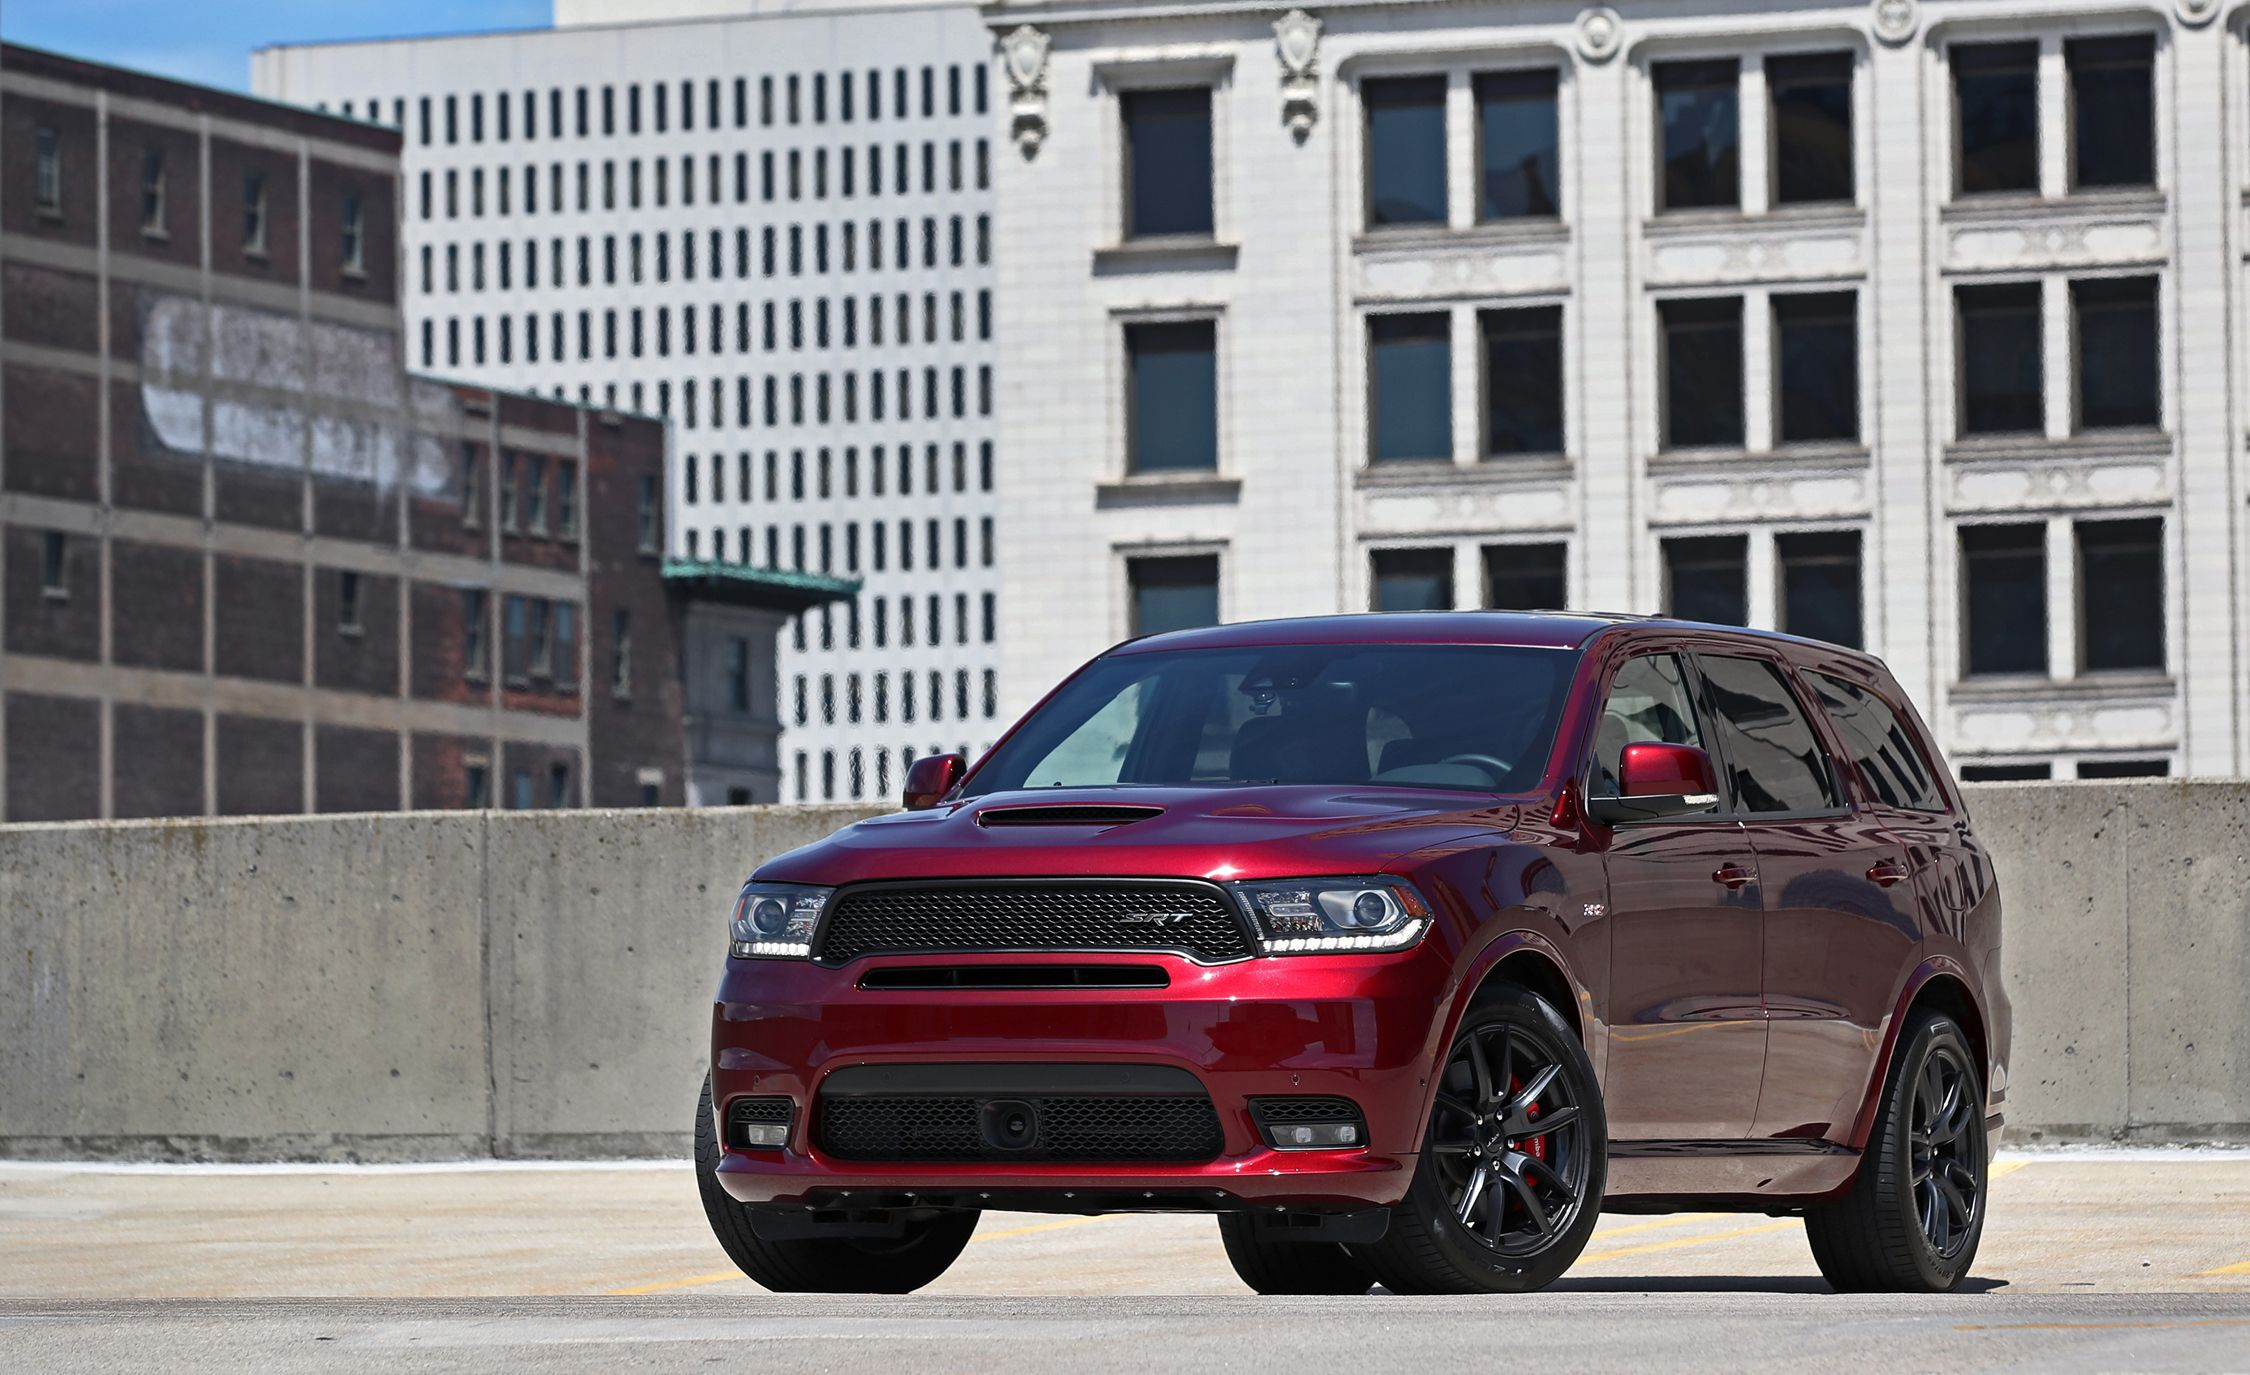 2018 Dodge Durango   In-Depth Model Review   Car and Driver